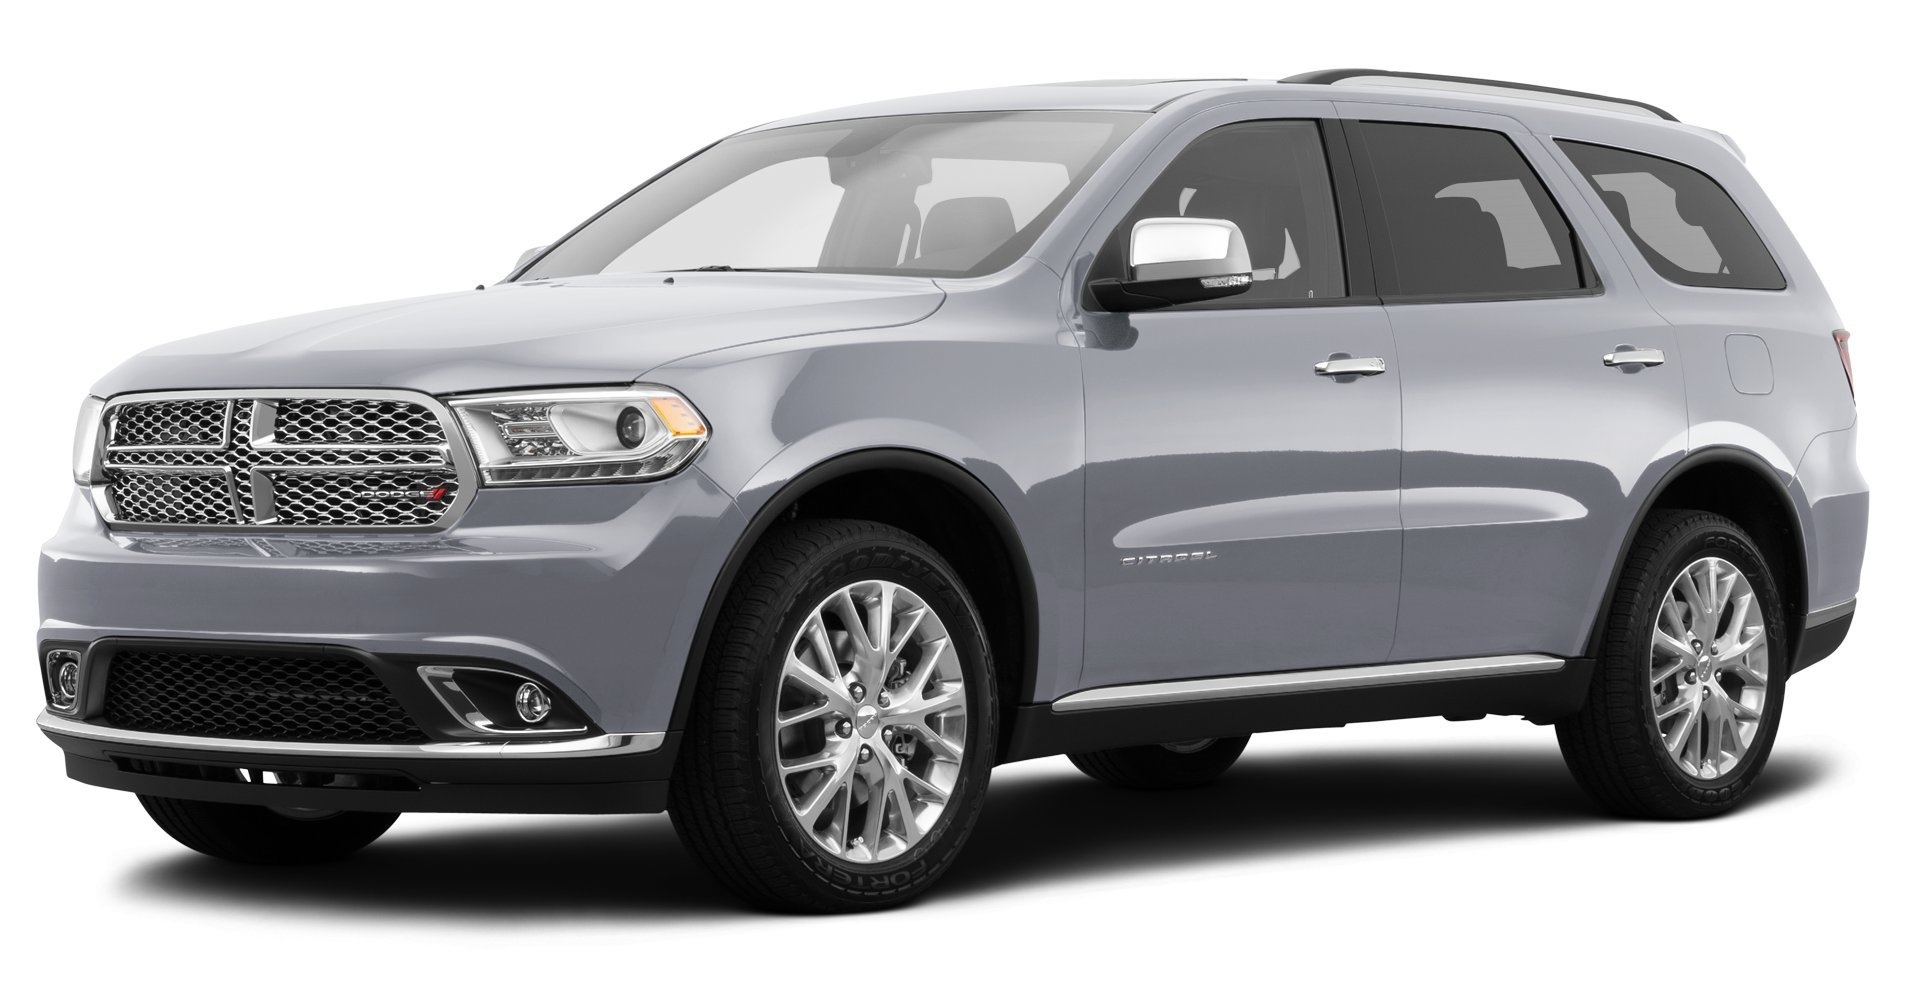 71phv6X emL amazon com 2015 dodge durango reviews, images, and specs vehicles  at n-0.co